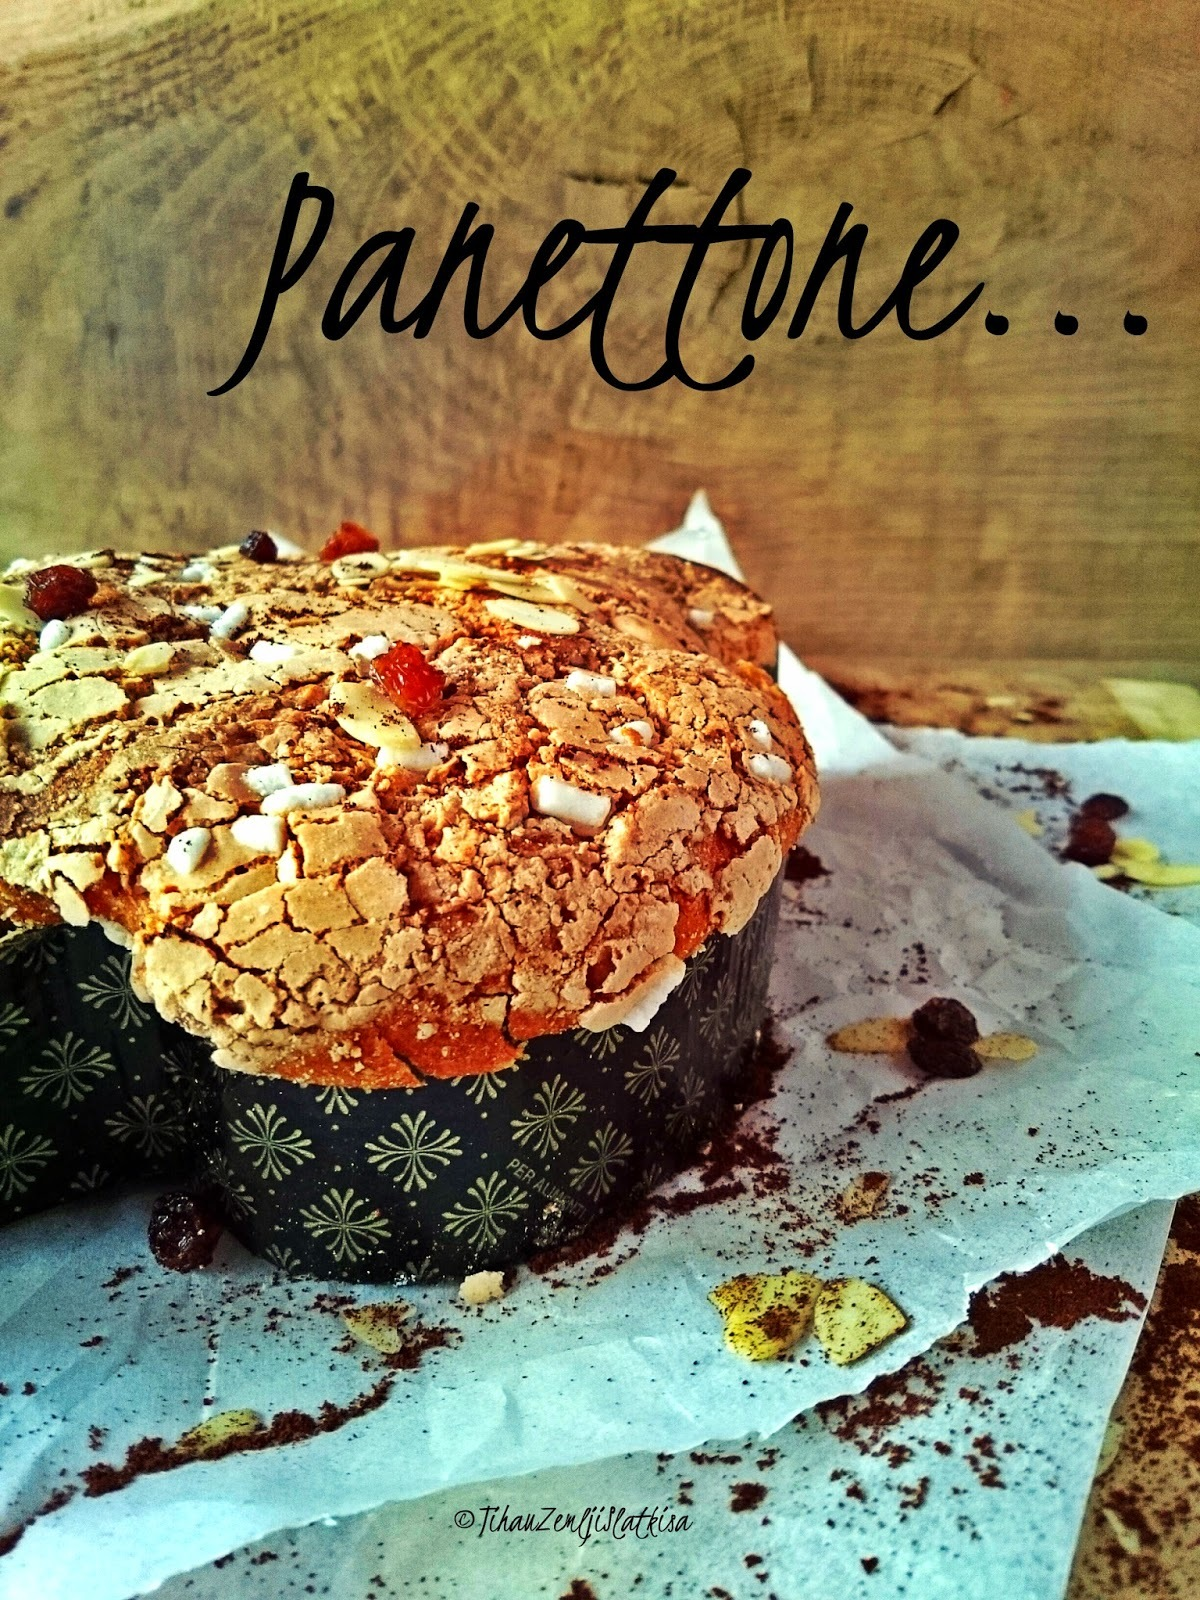 (CAFE.HR) Panettone...